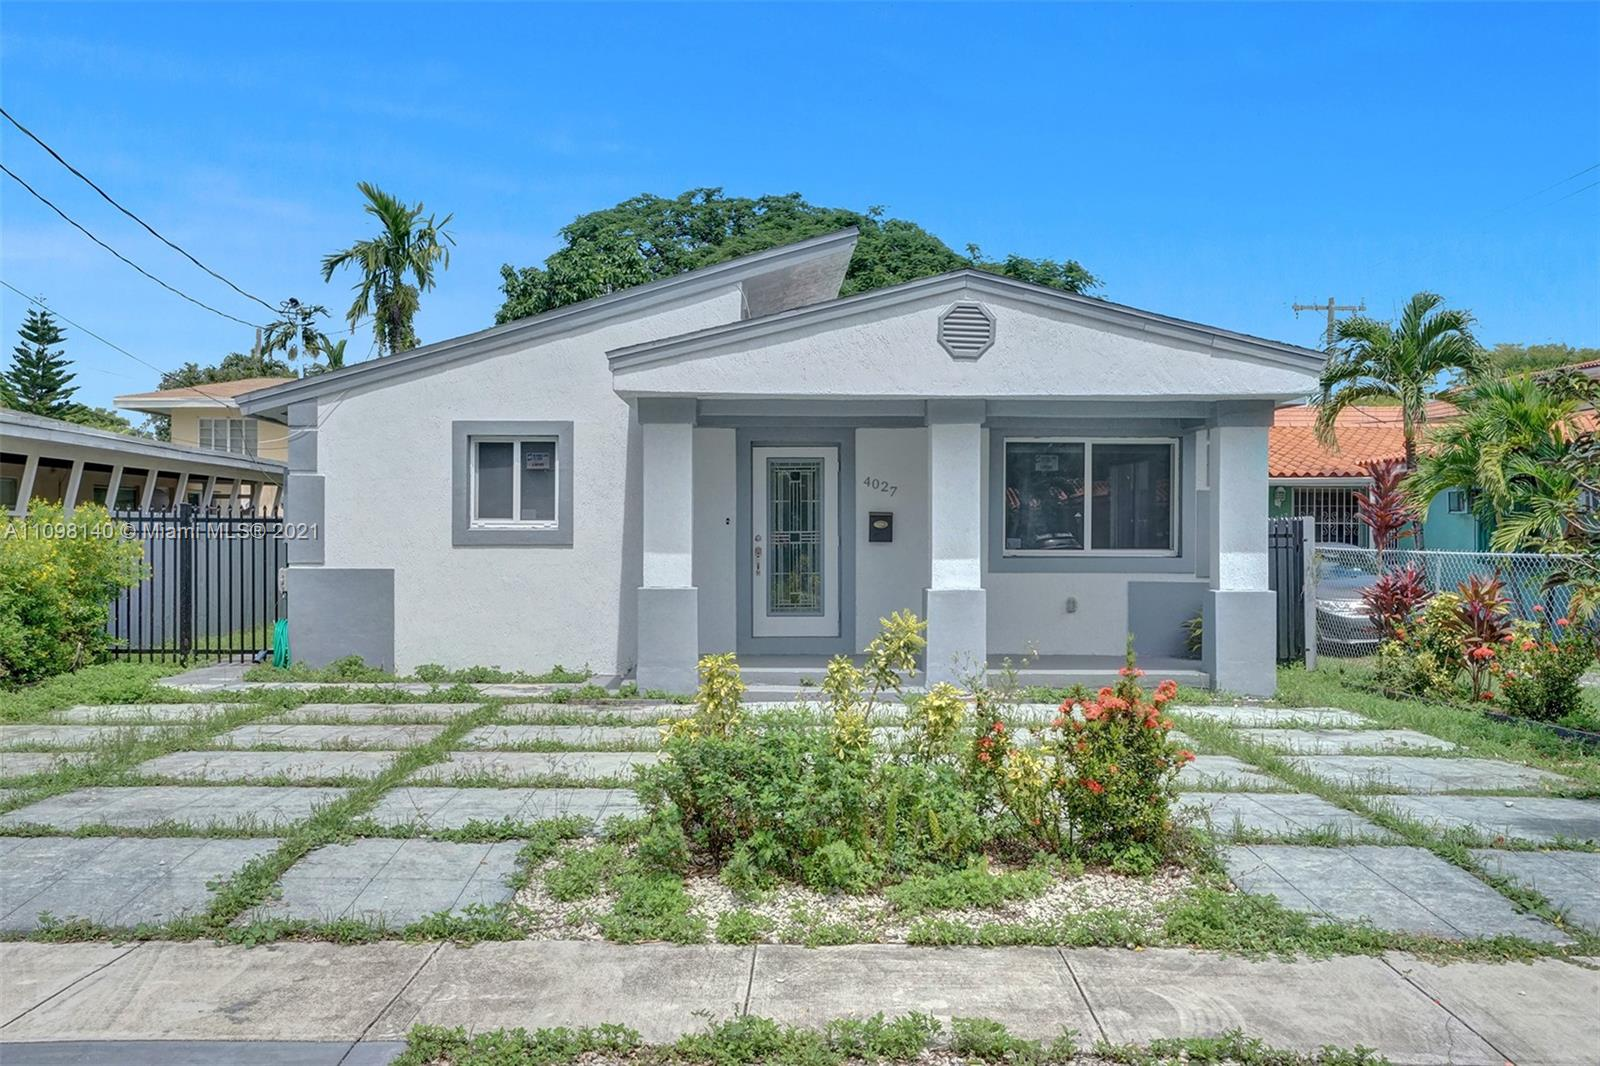 Single Family Home,For Sale,4027 SW 11th St, Coral Gables, Florida 33134,Brickell,realty,broker,condos near me